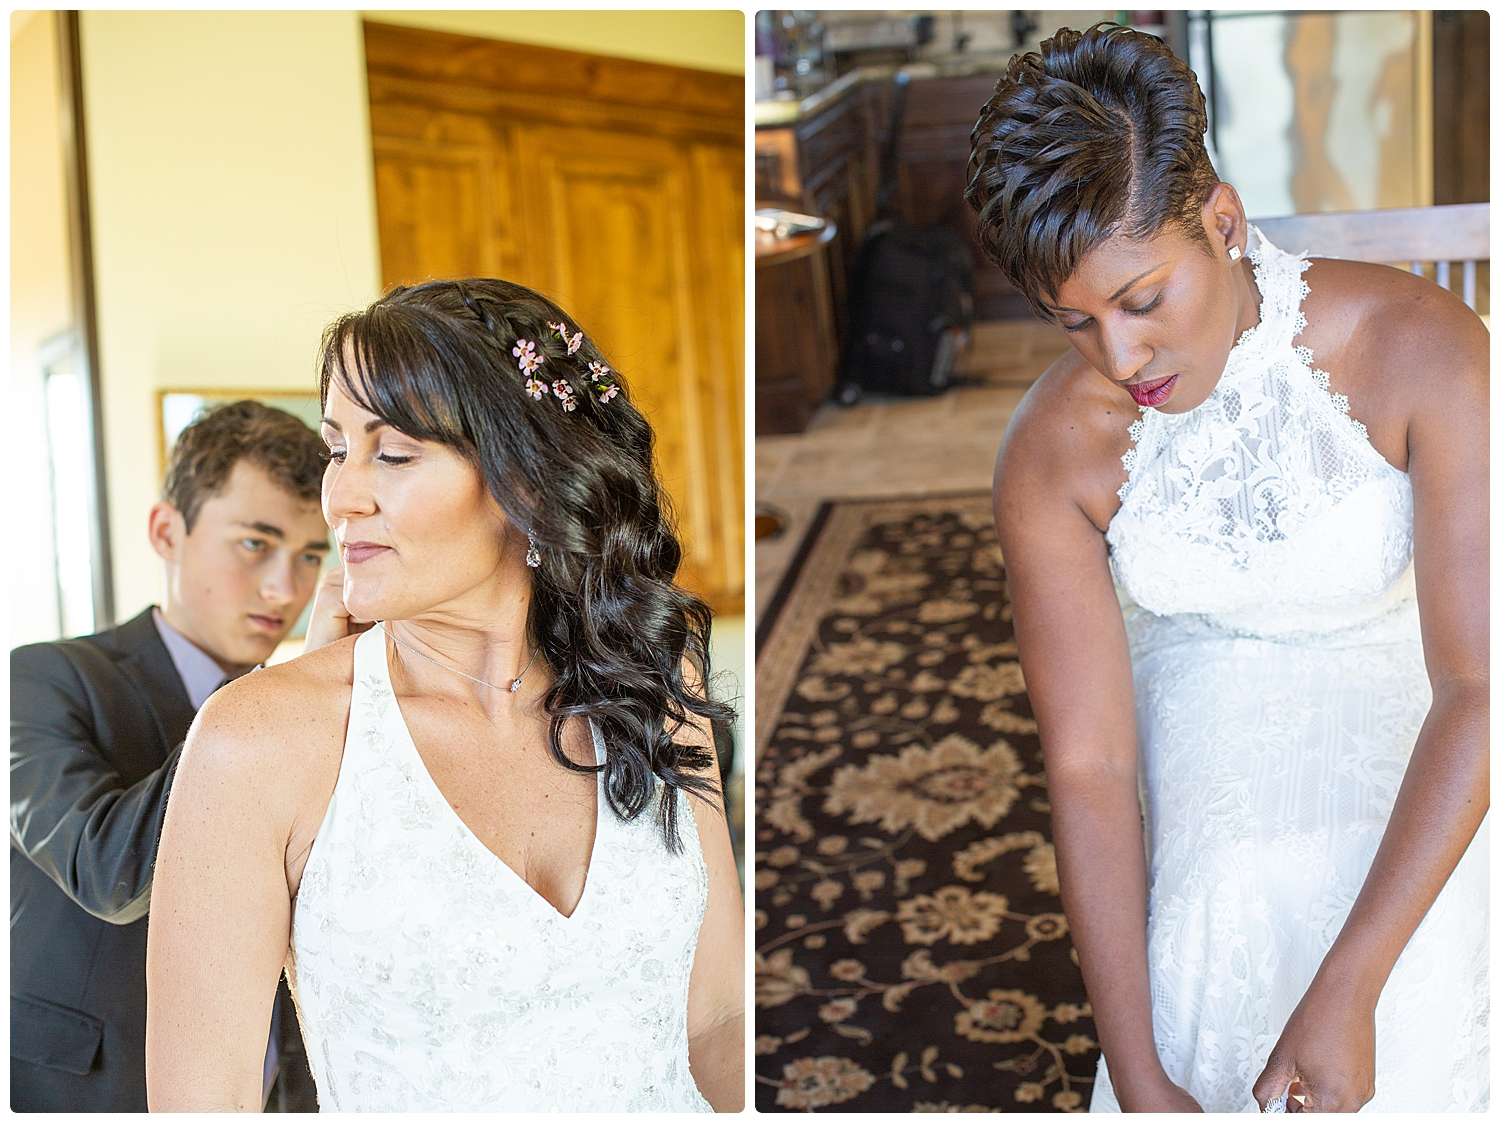 New Years Eve intimate wedding_Renoda Campbell Photography_LGBT wedding_0048.jpg